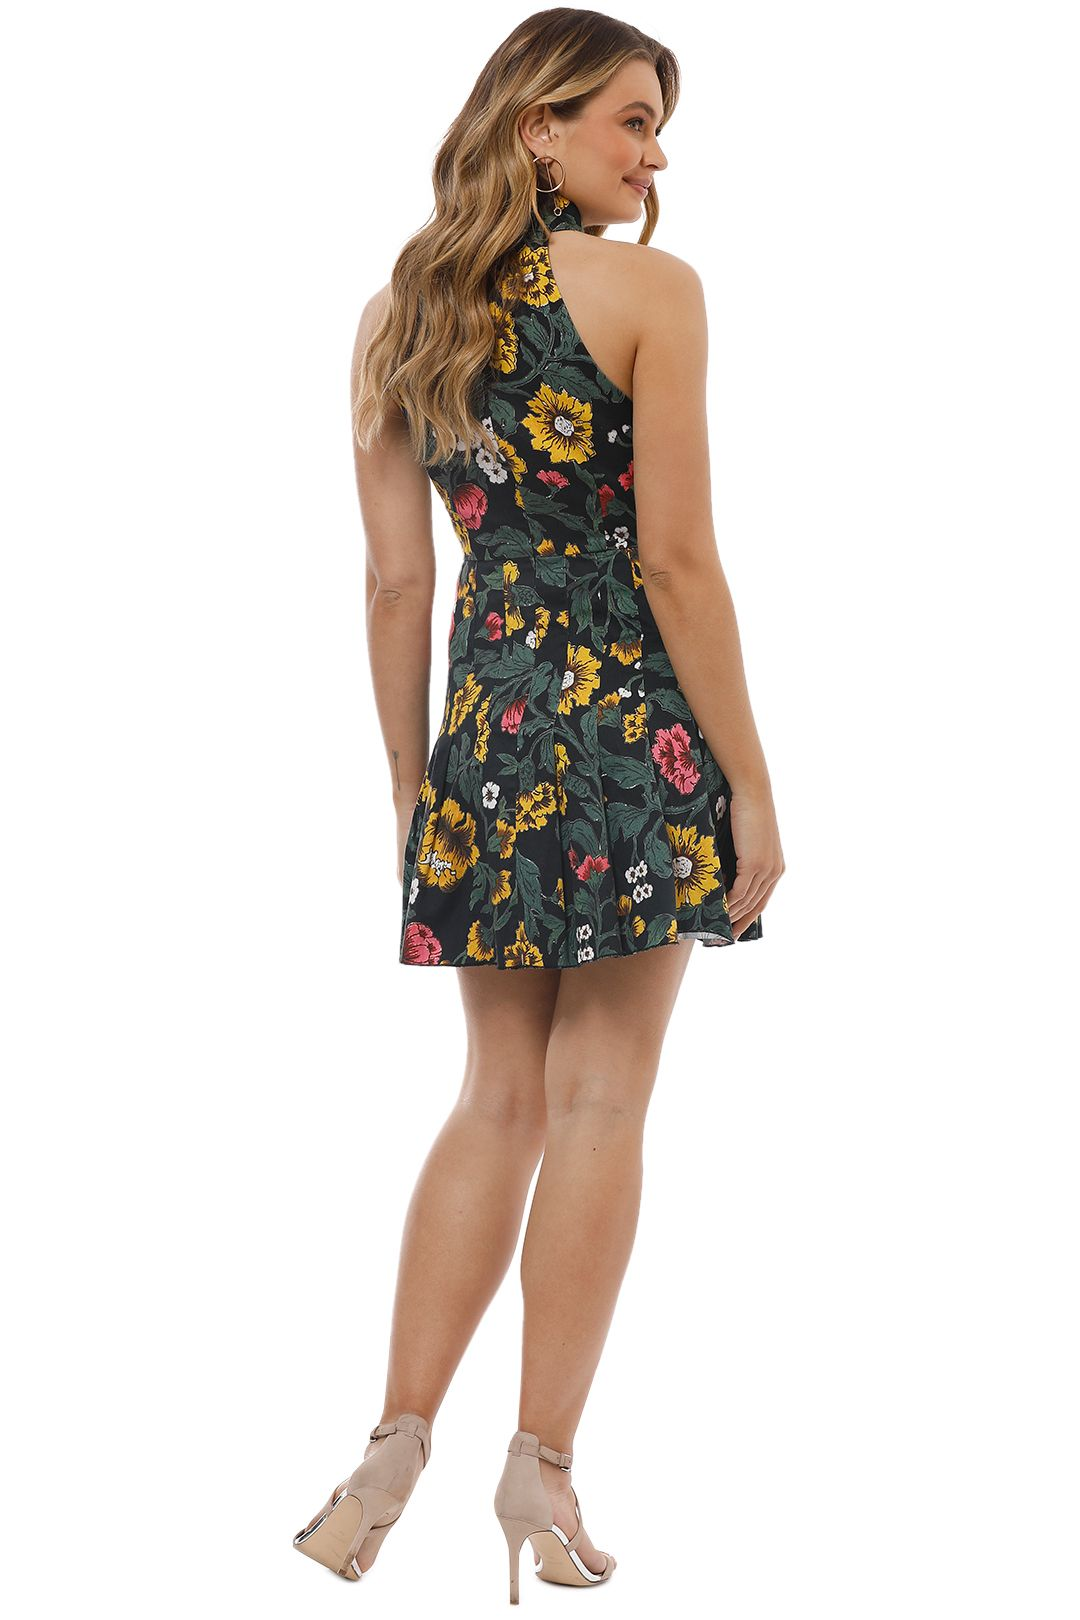 Cameo - Another Lover Dress - Black - Back